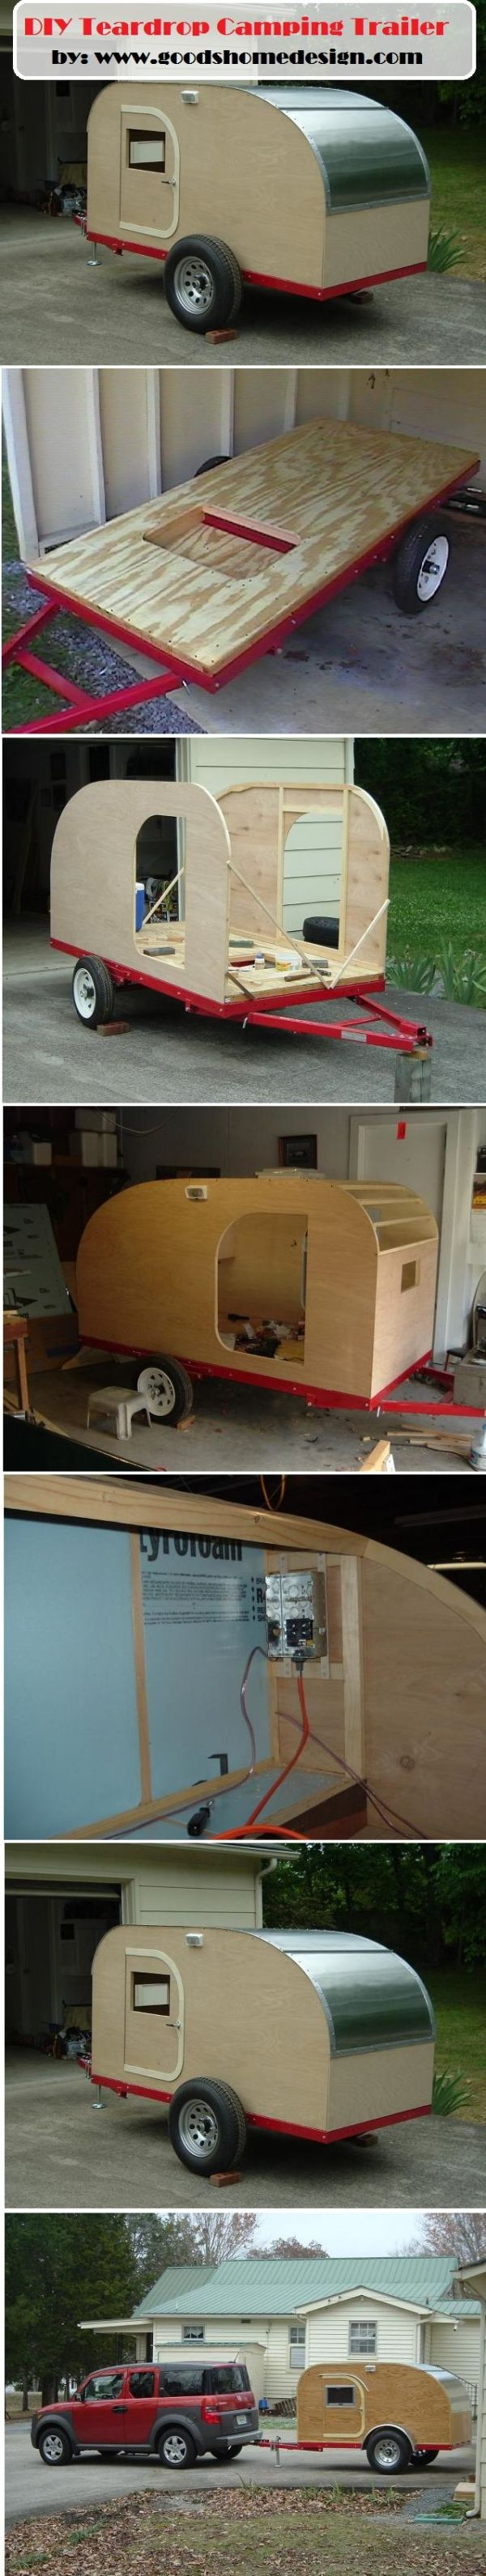 DIY Teardrop Camping Trailer by maryj1909